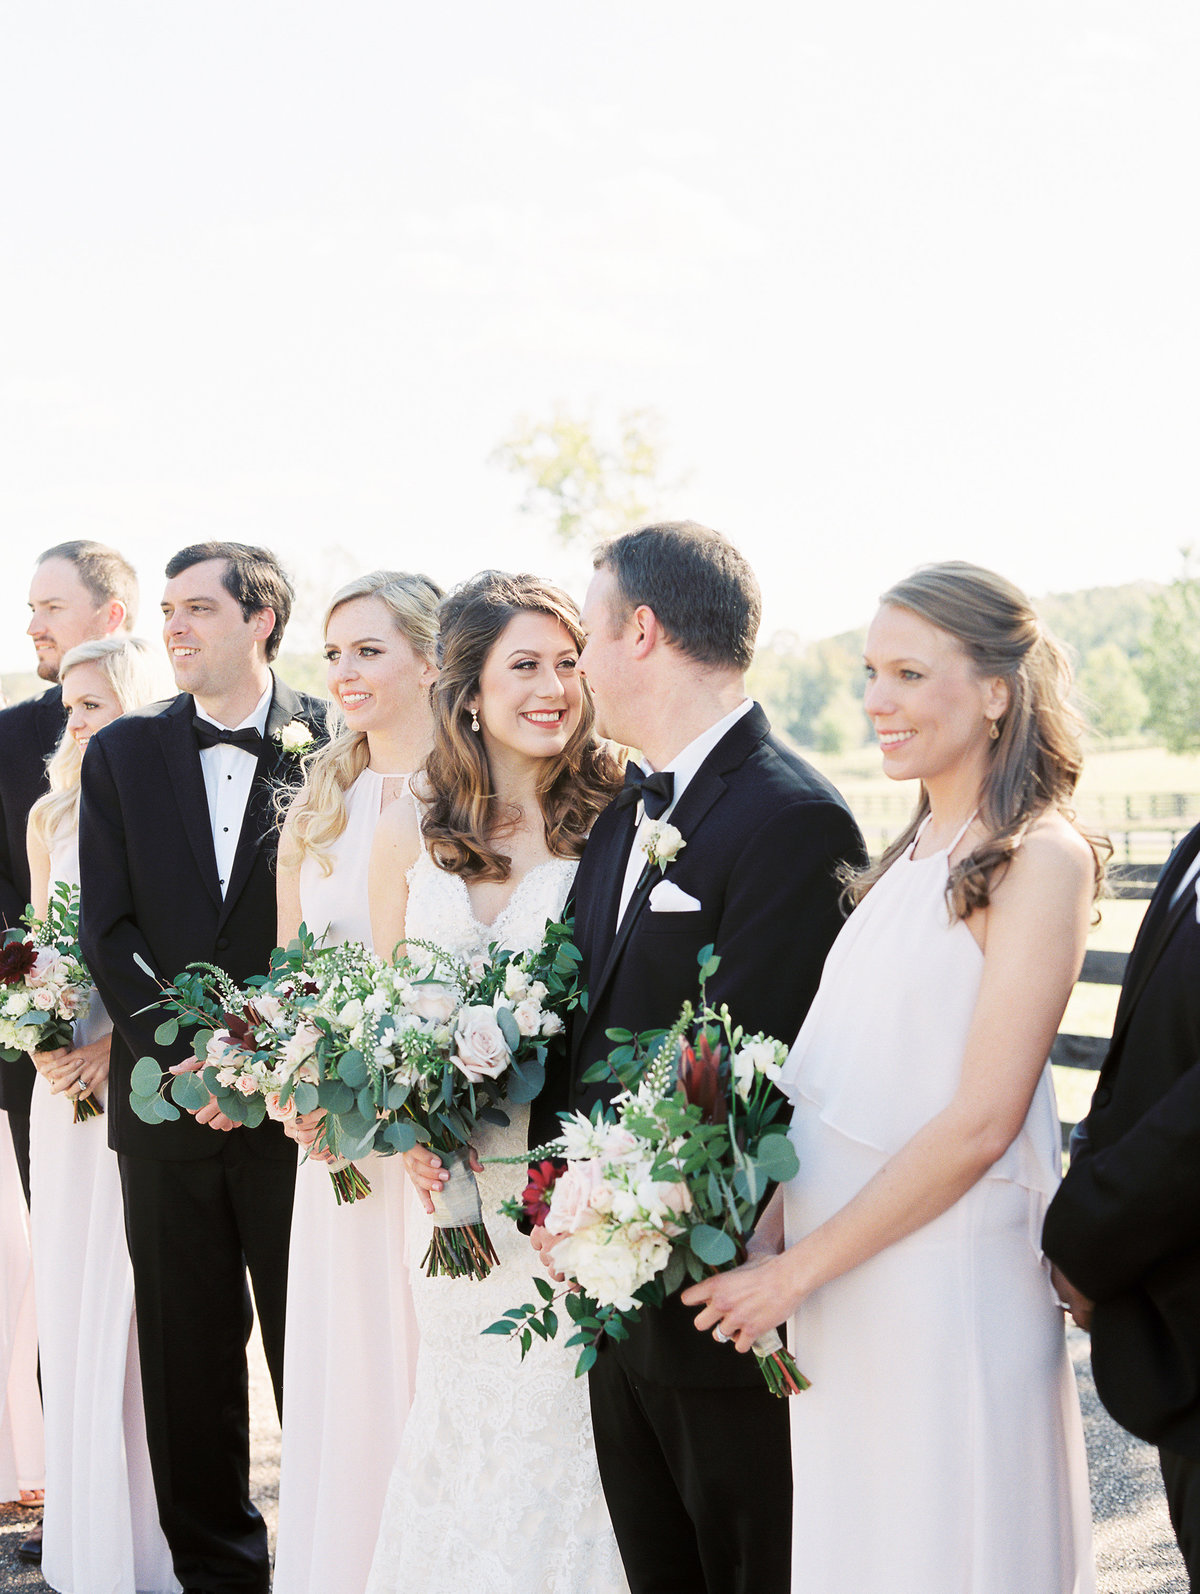 690_Anne & Ryan Wedding_Lindsay Vallas Photog